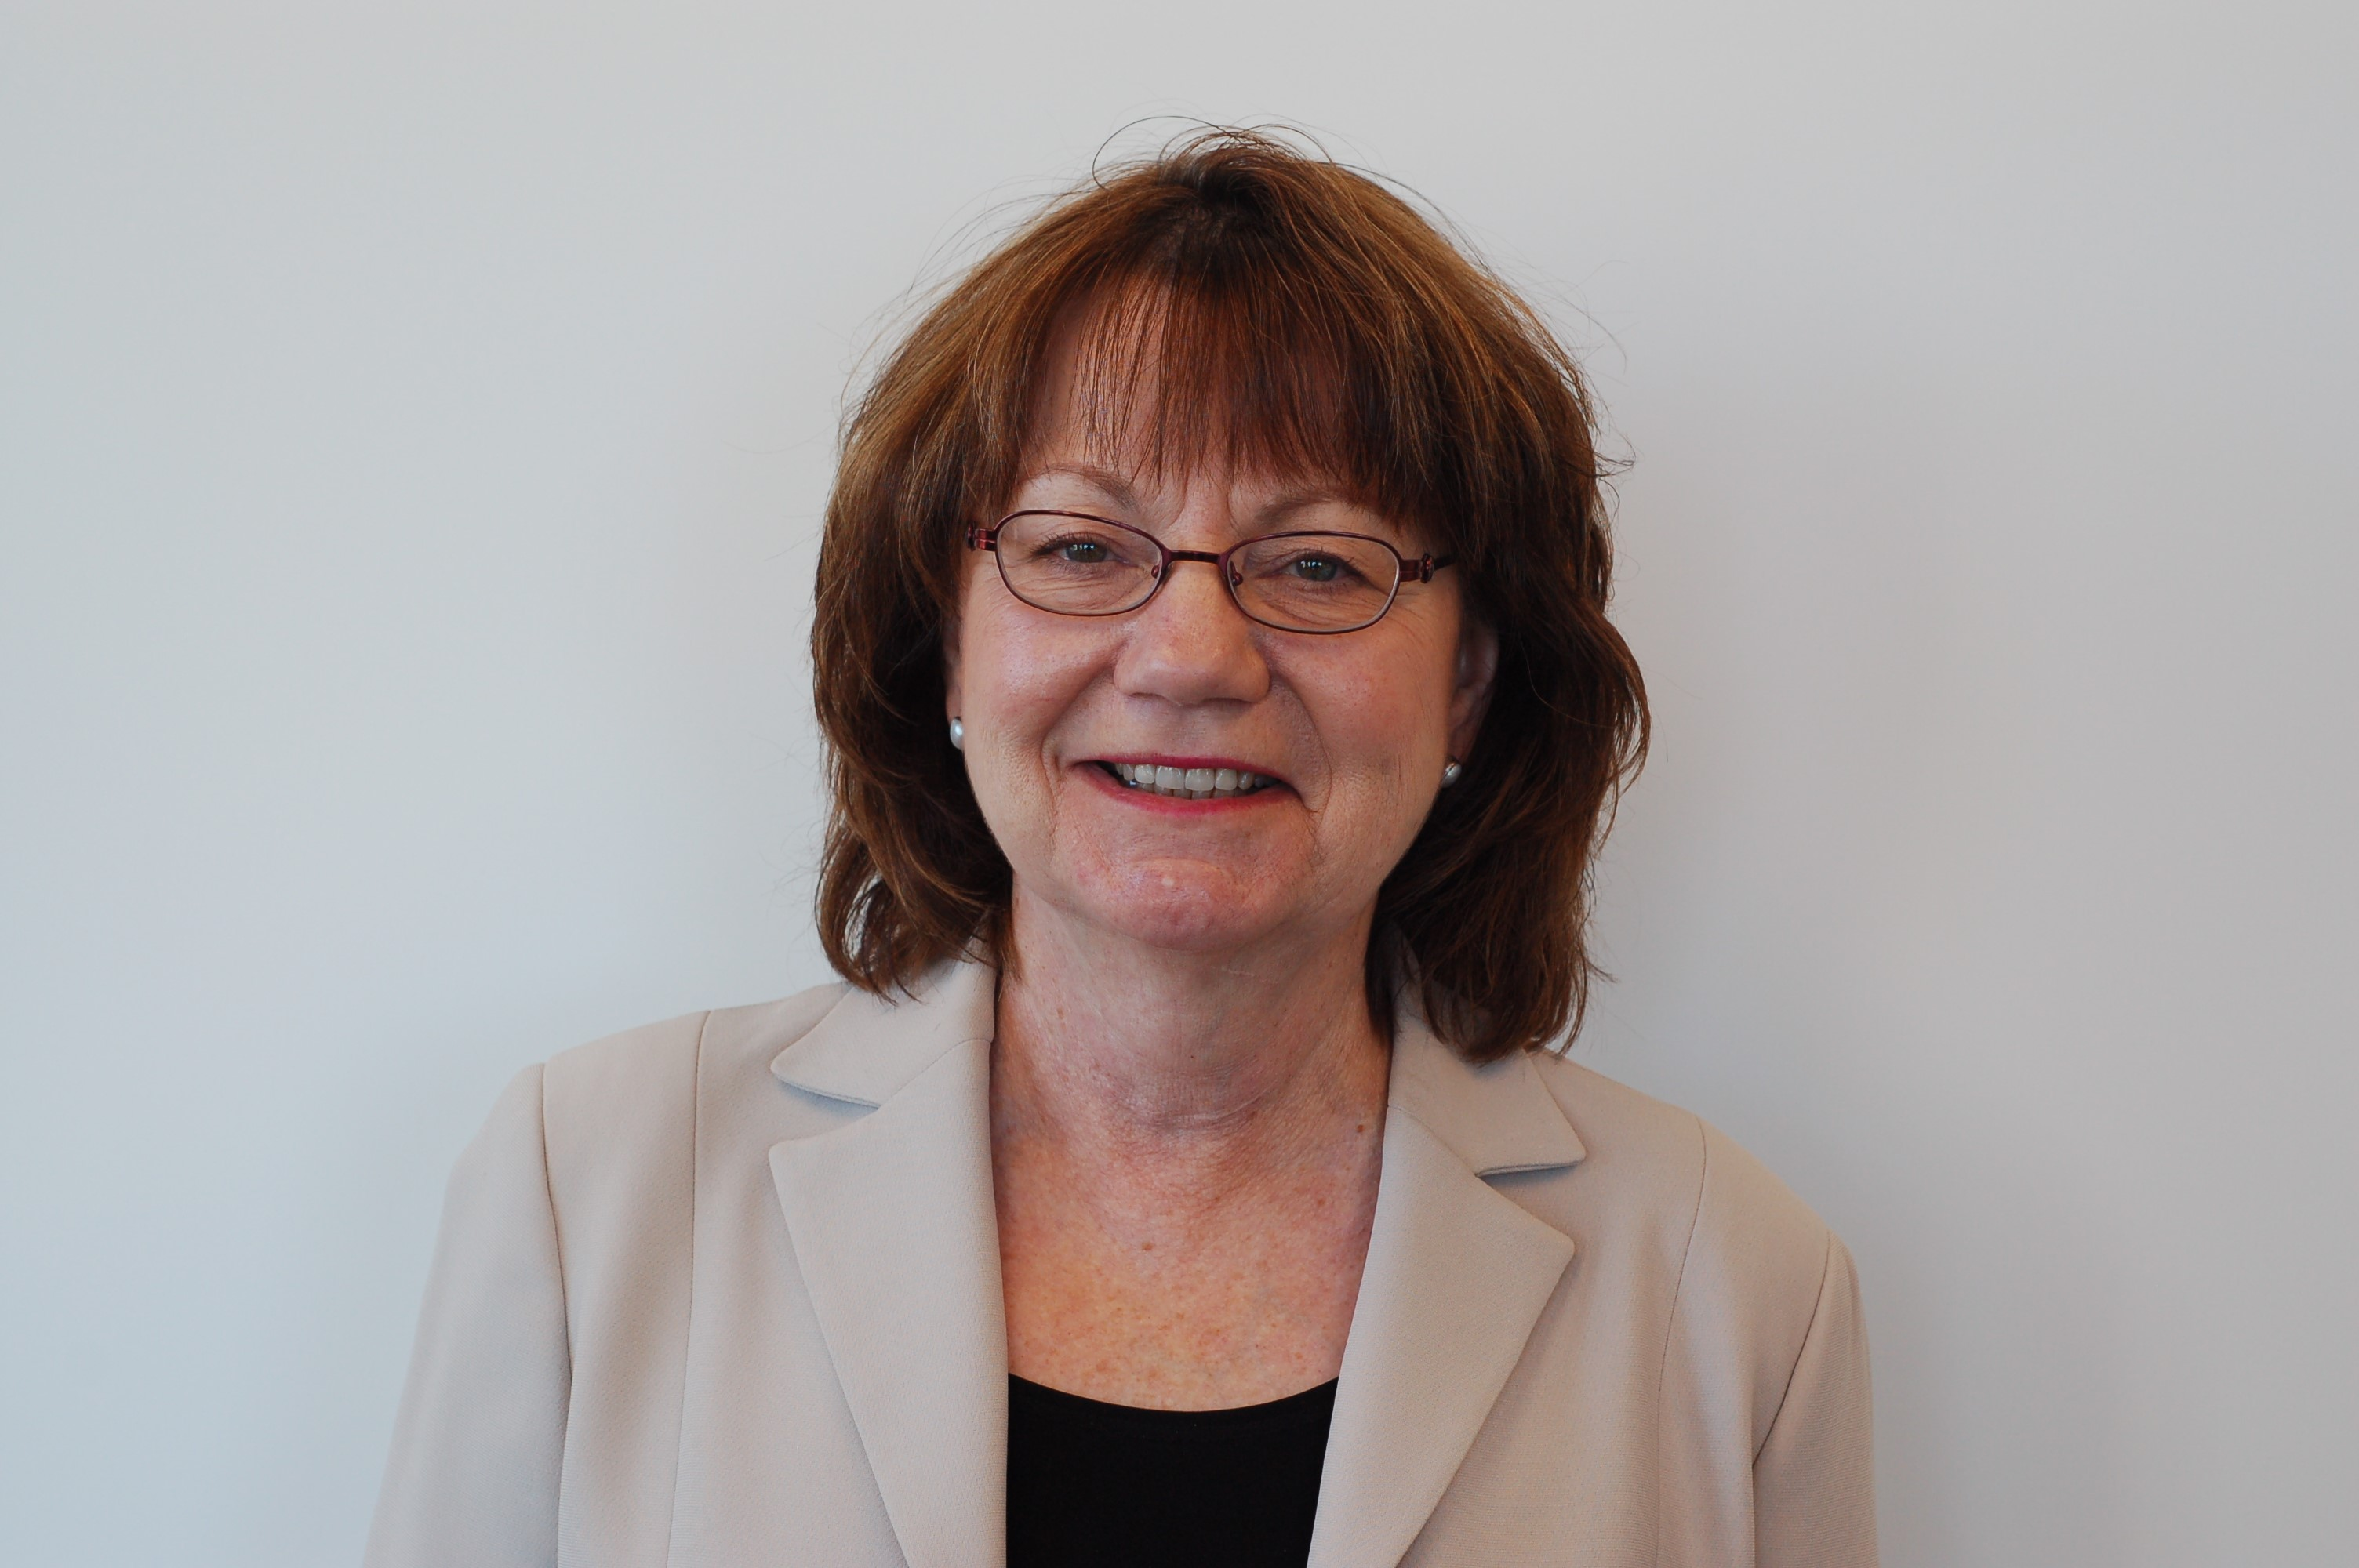 Headshot of Suzanne Plemmons, MN, RH, PHCNS-BC, Community Health Director (Retired)